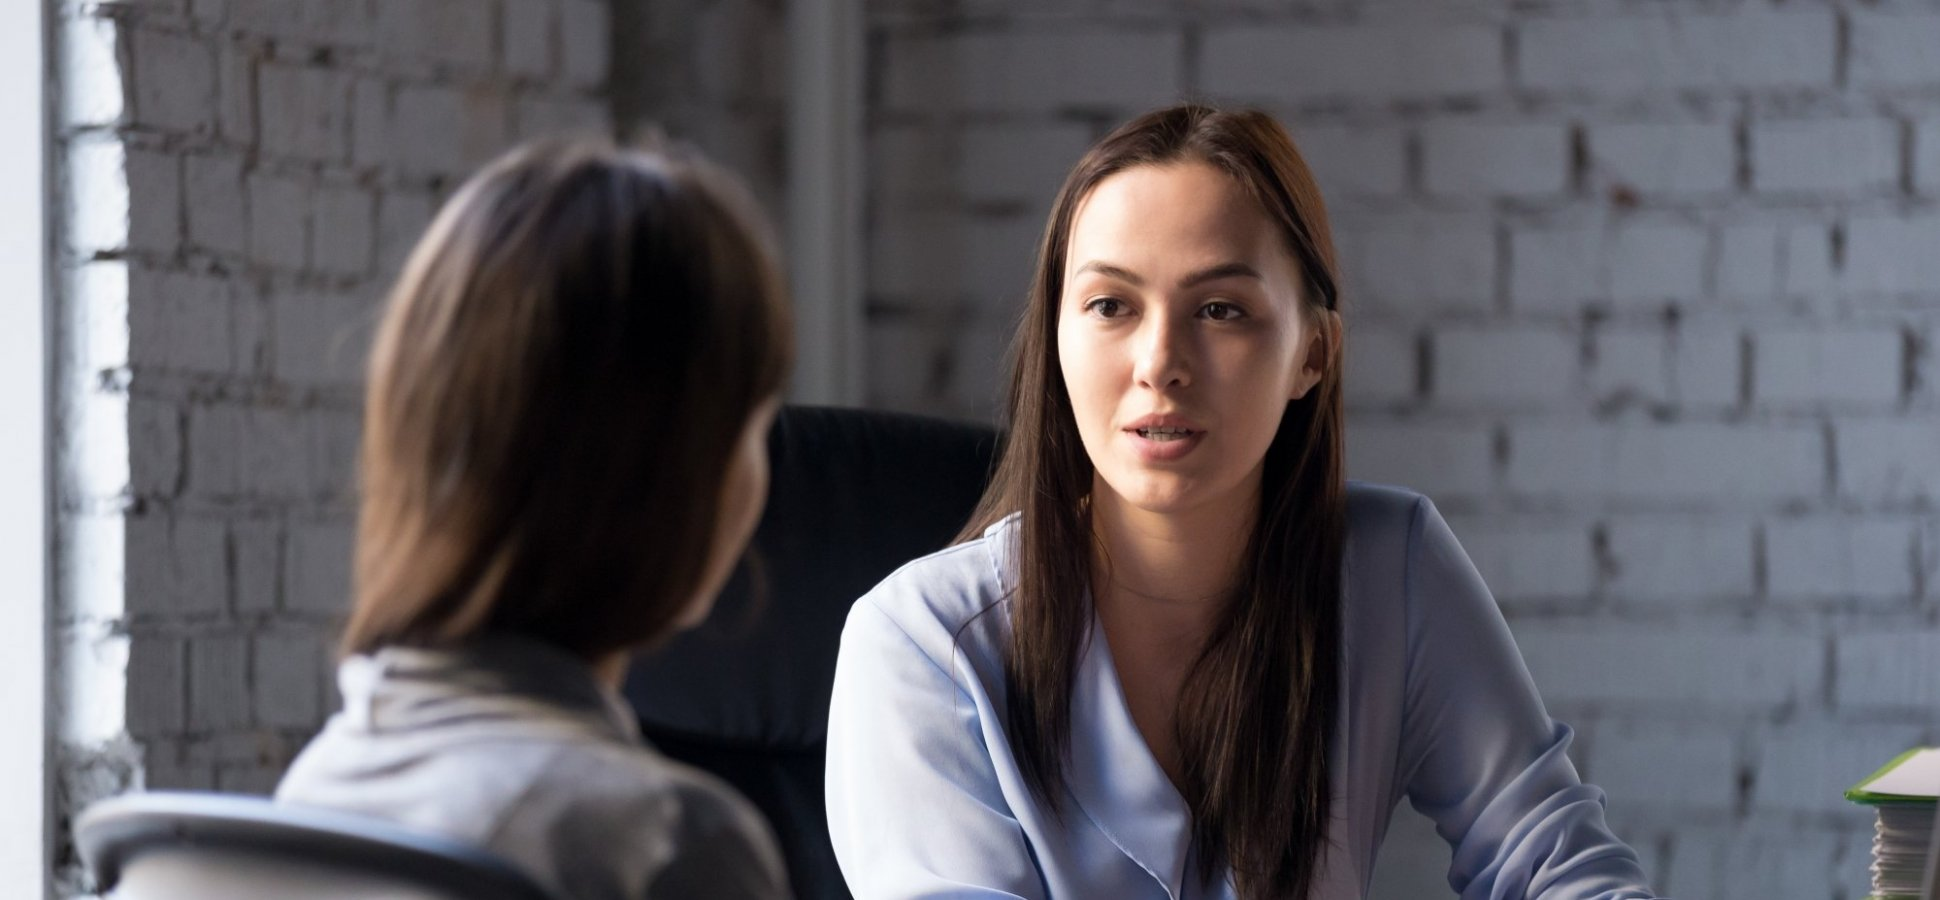 Need to Have an Uncomfortable Conversation? Do These 5 Things Right Now